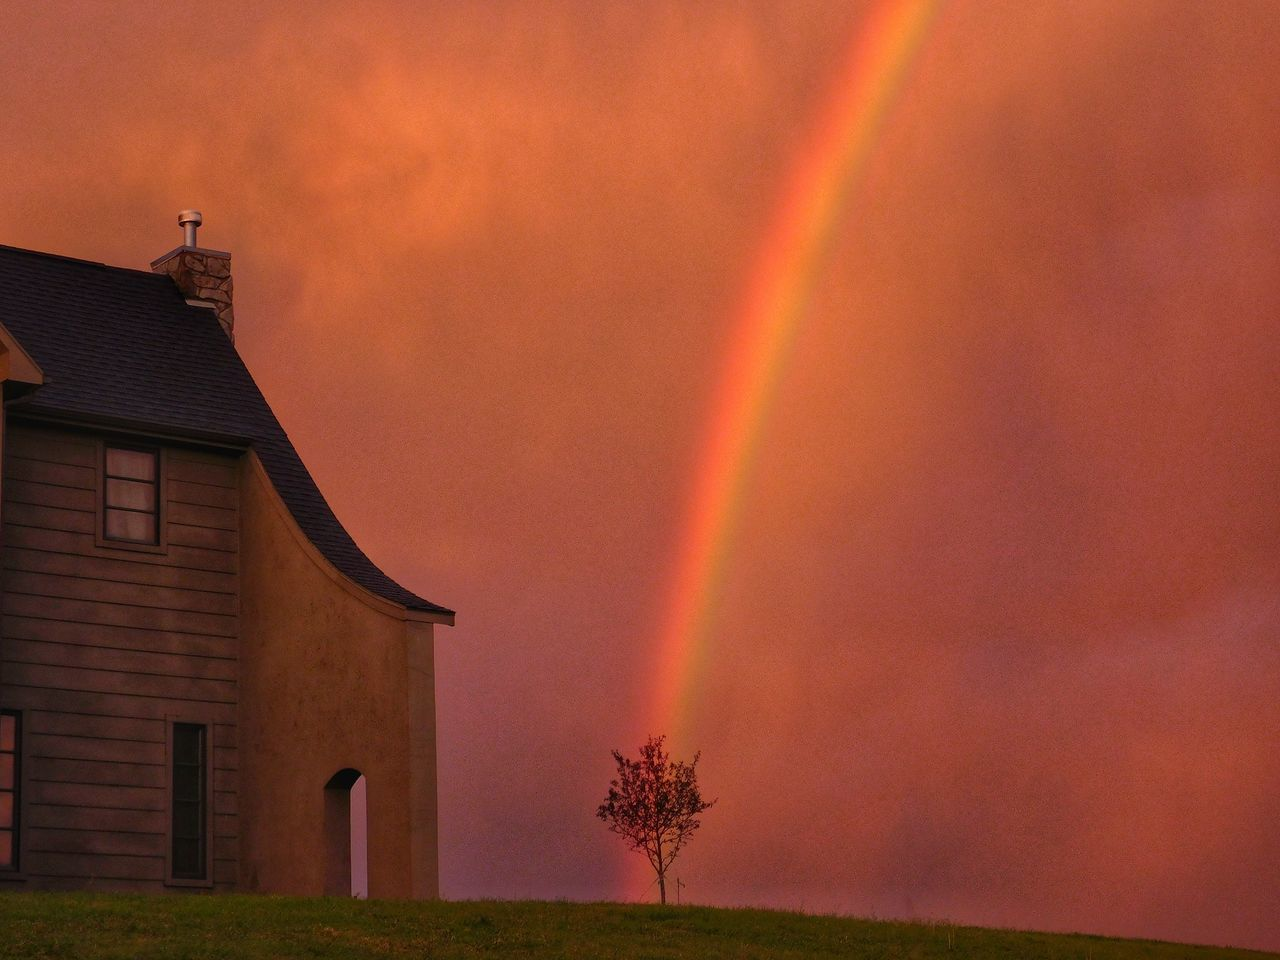 rainbow, beauty in nature, sunset, nature, no people, scenics, building exterior, built structure, tranquility, outdoors, tree, tranquil scene, architecture, sky, day